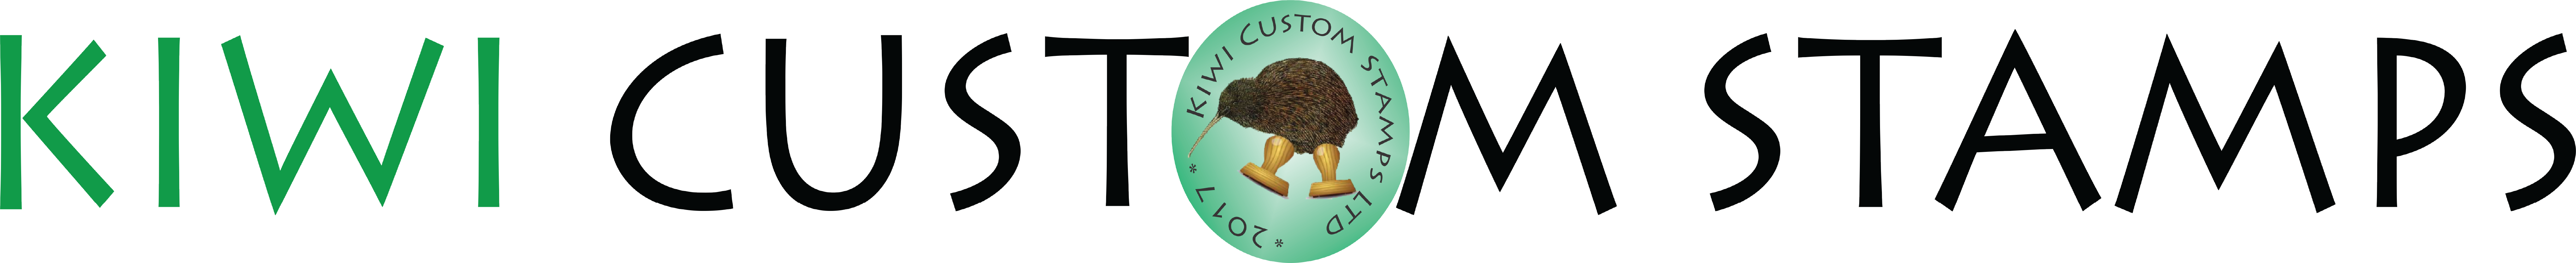 Kiwi Custom Stamps Limited